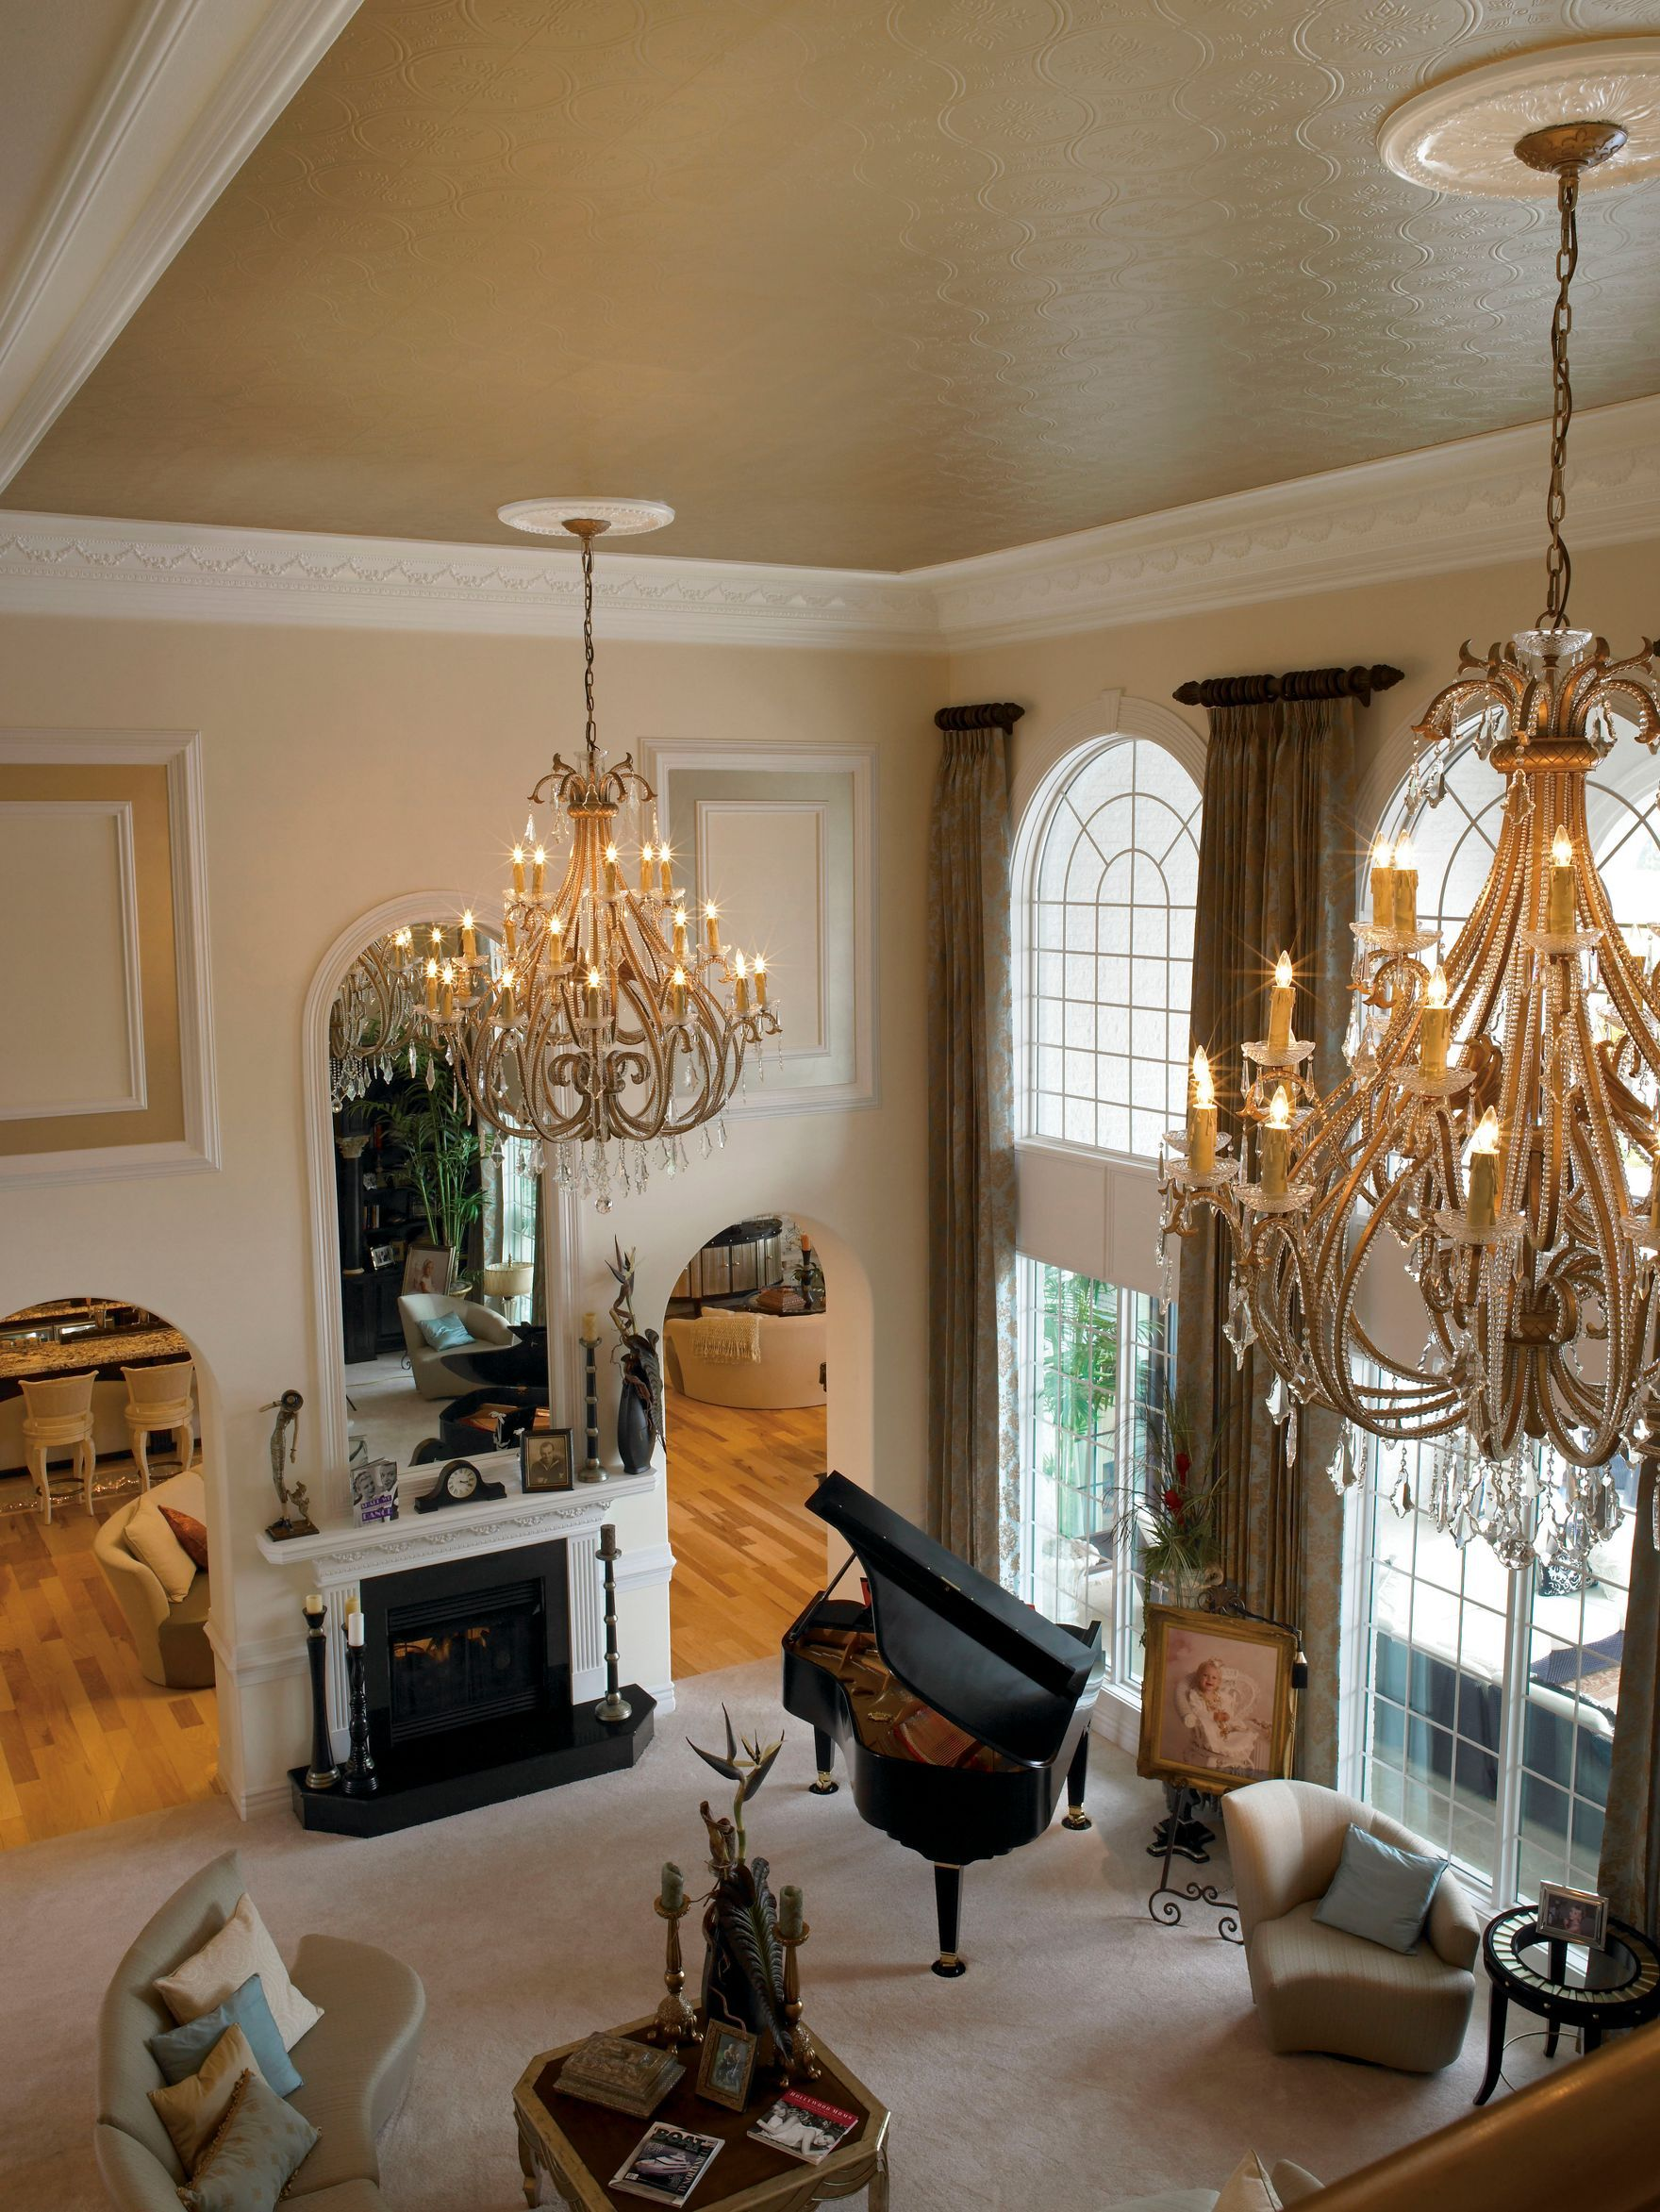 private bespoke residence plaster services stevensons ceiling norwich of ceilings decorative